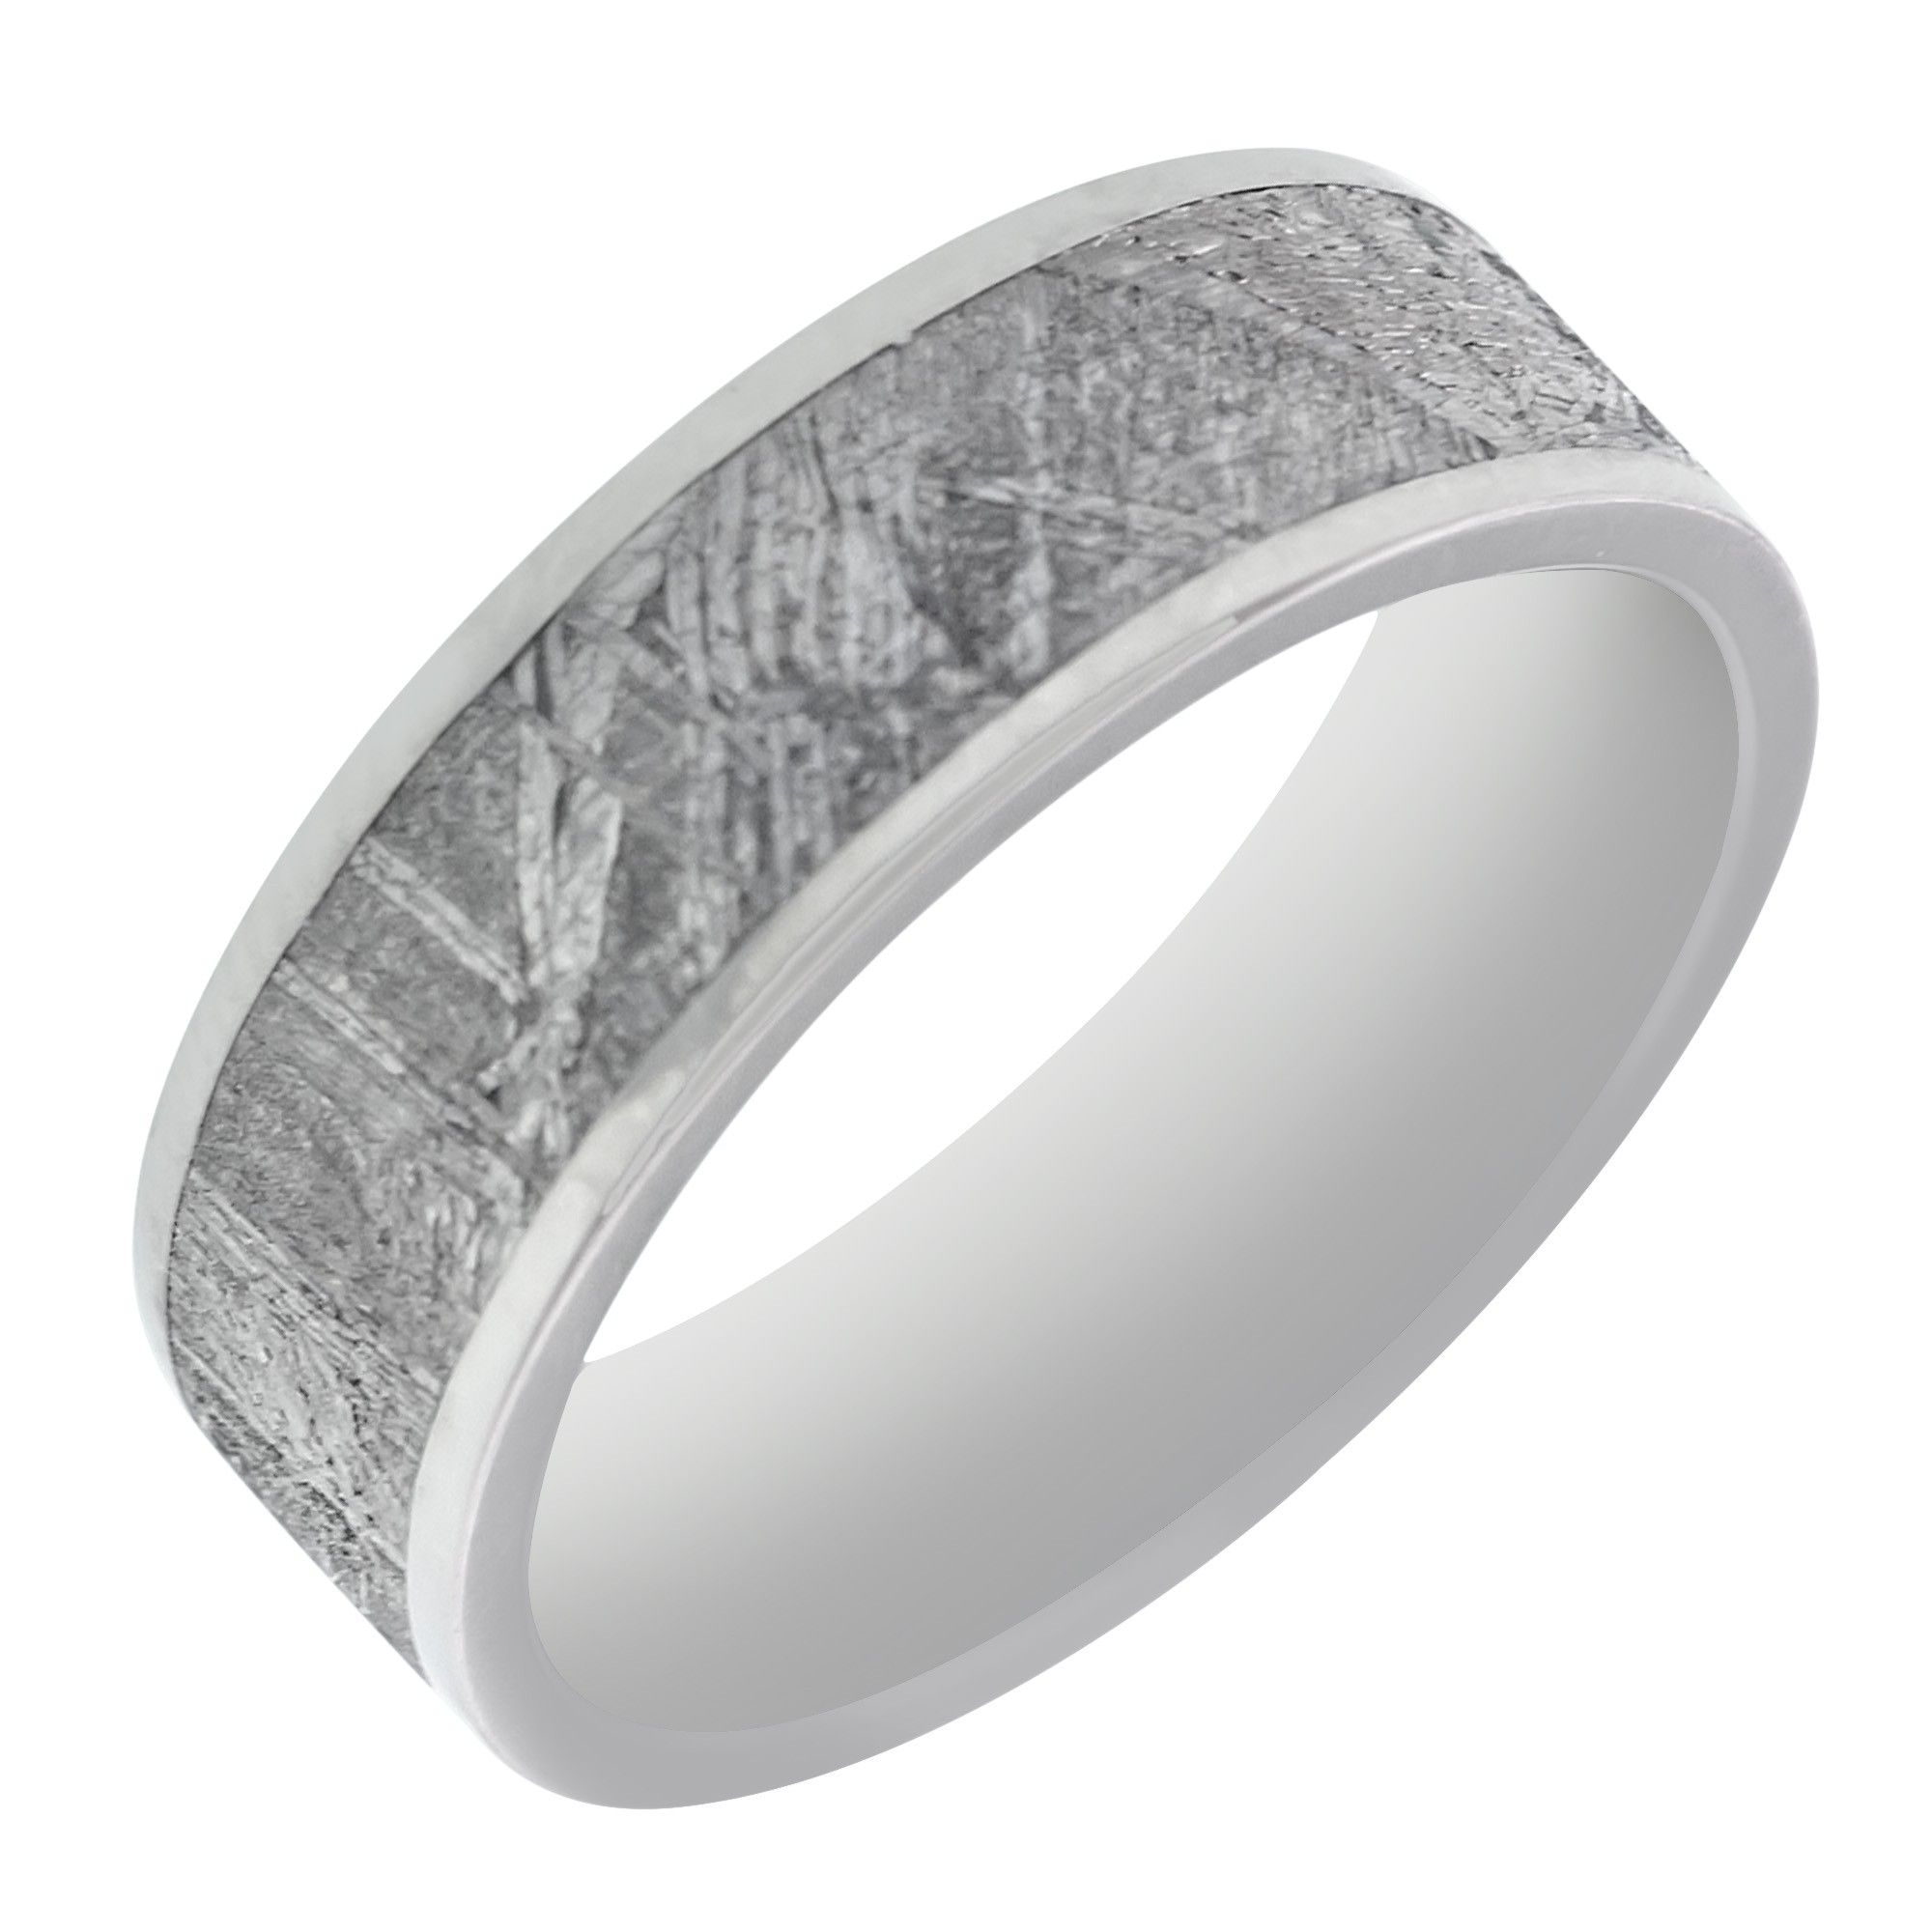 This Unique Mens Meteorite In Titanium Wedding Band Is A One Of Kind Piece Art It Features Lined Crystaline Over Surface